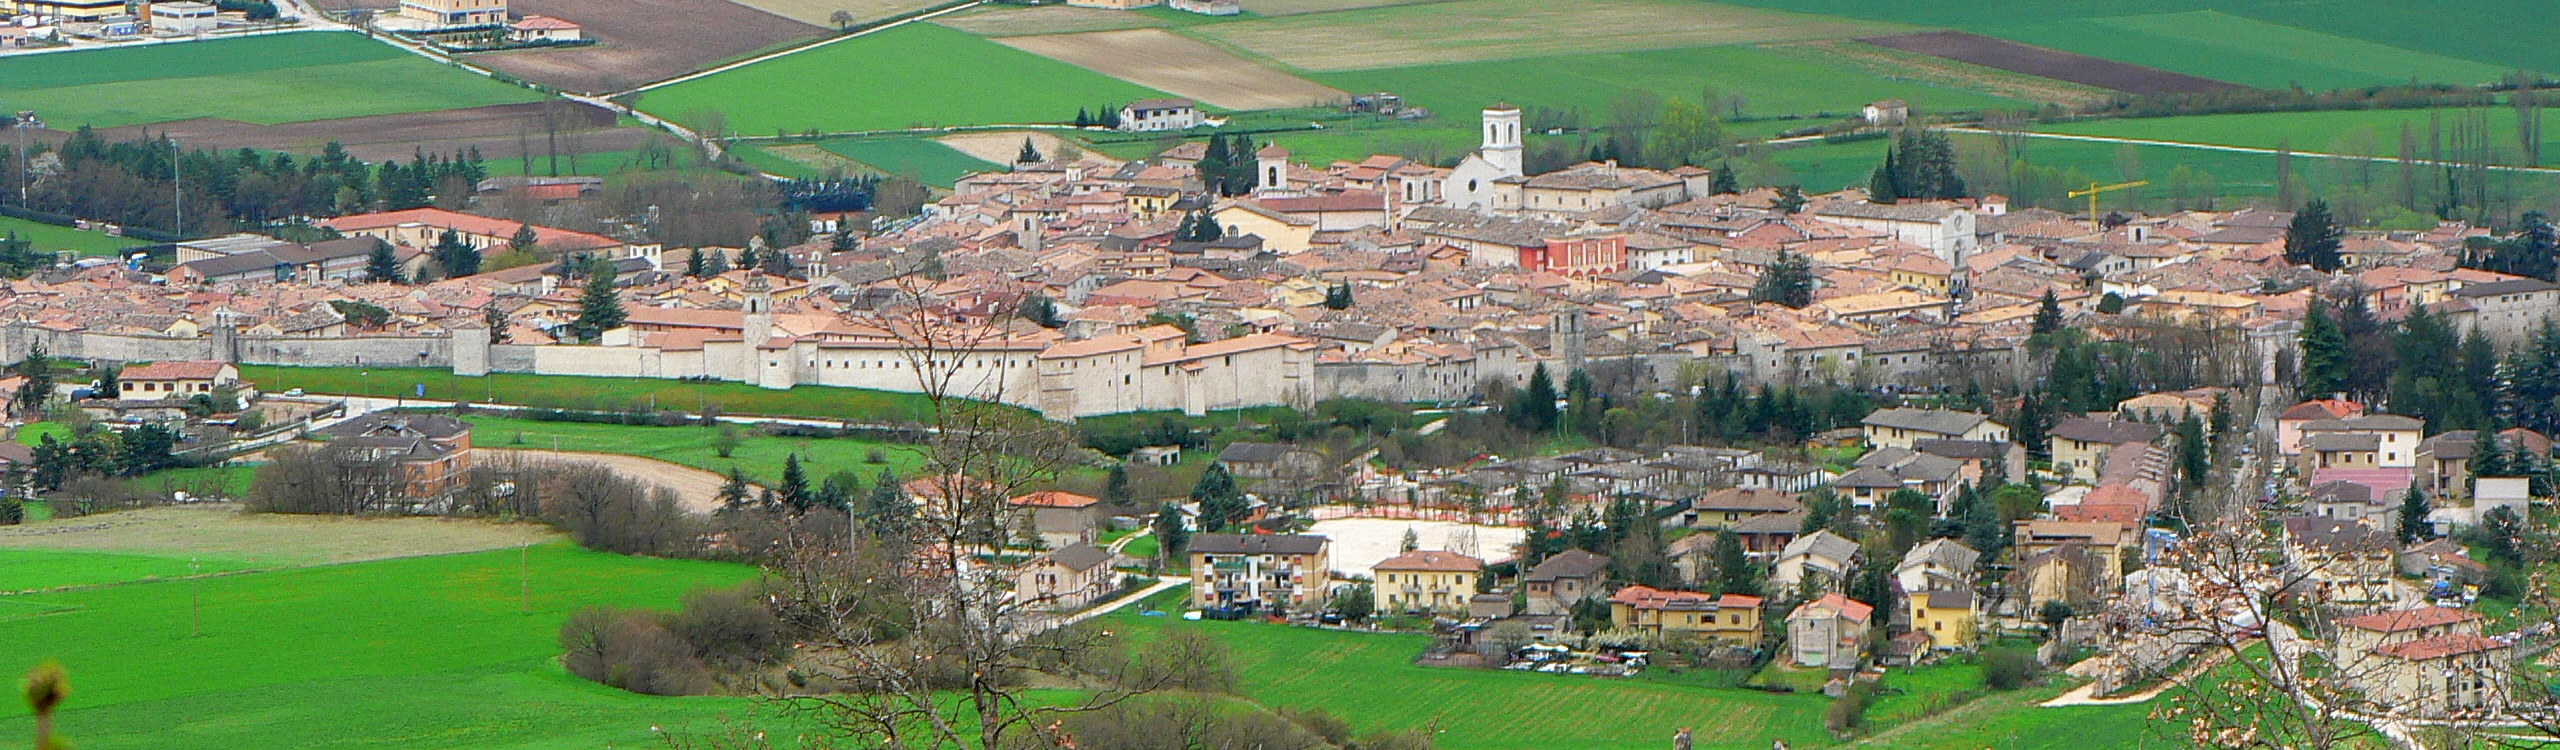 Norcia-panorama